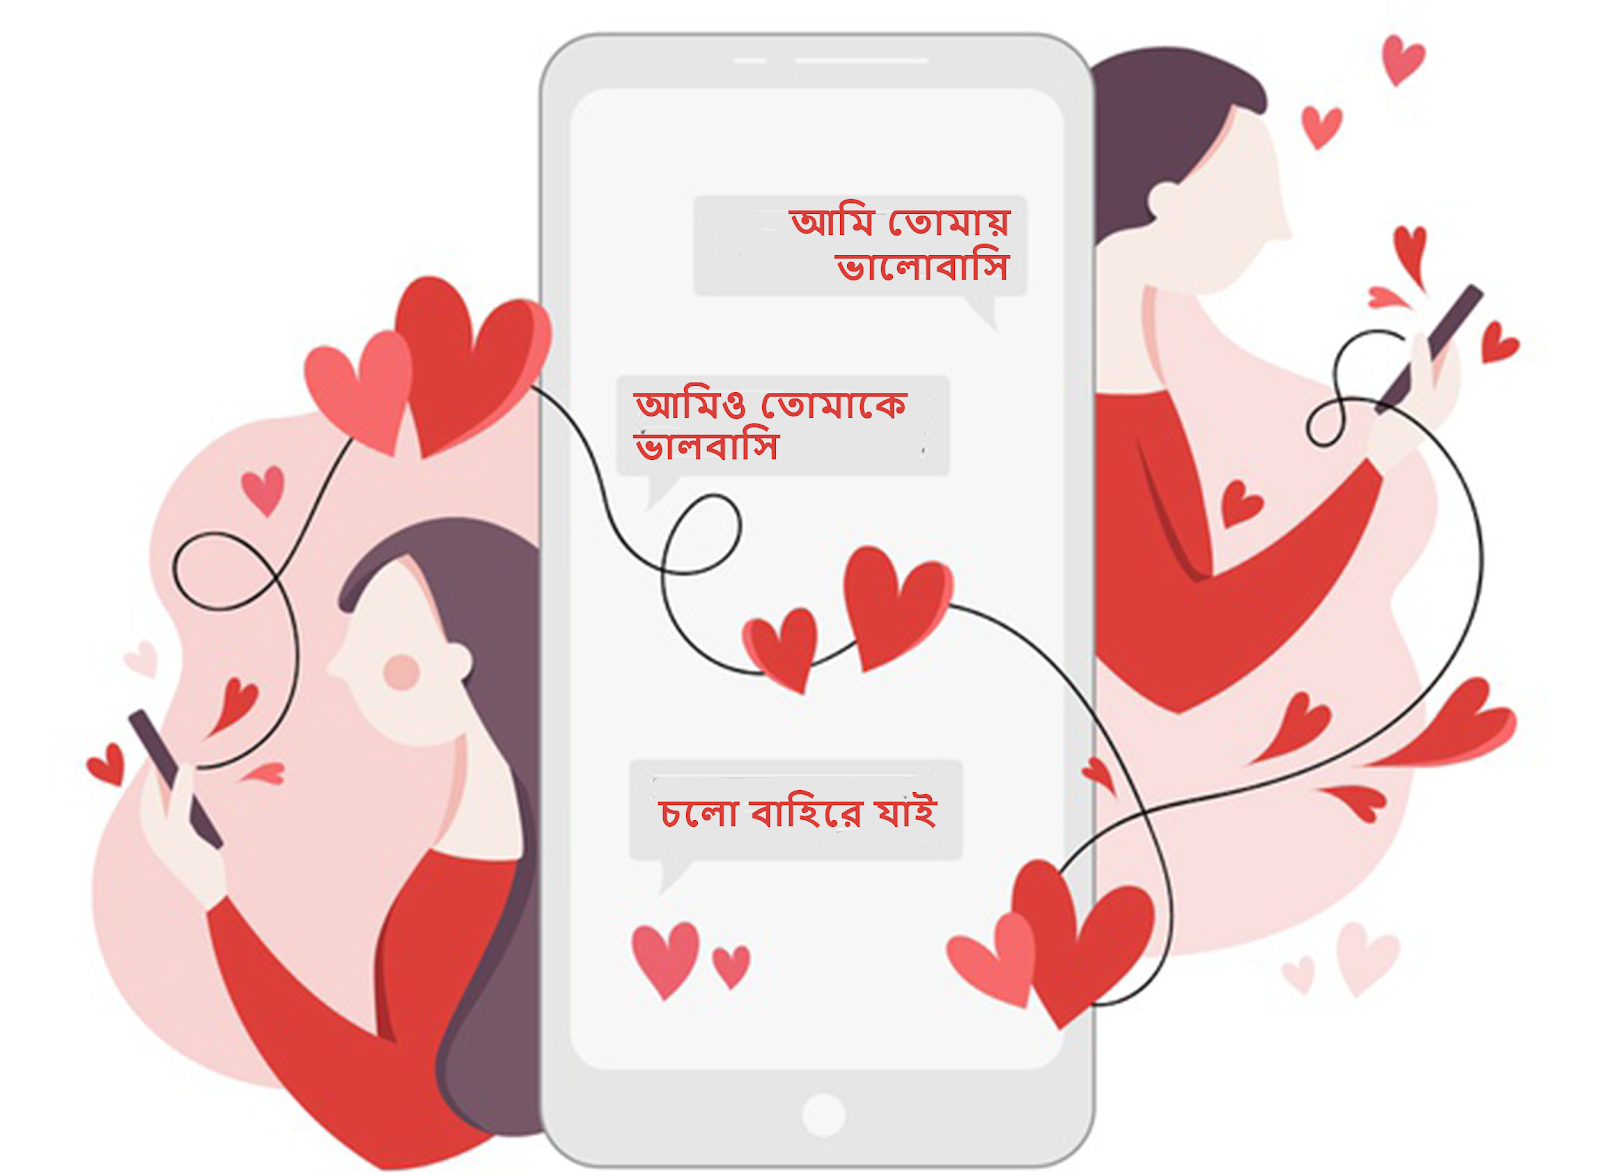 8 Reasons why Bengalis love❤️ the Bangla Keyboard App